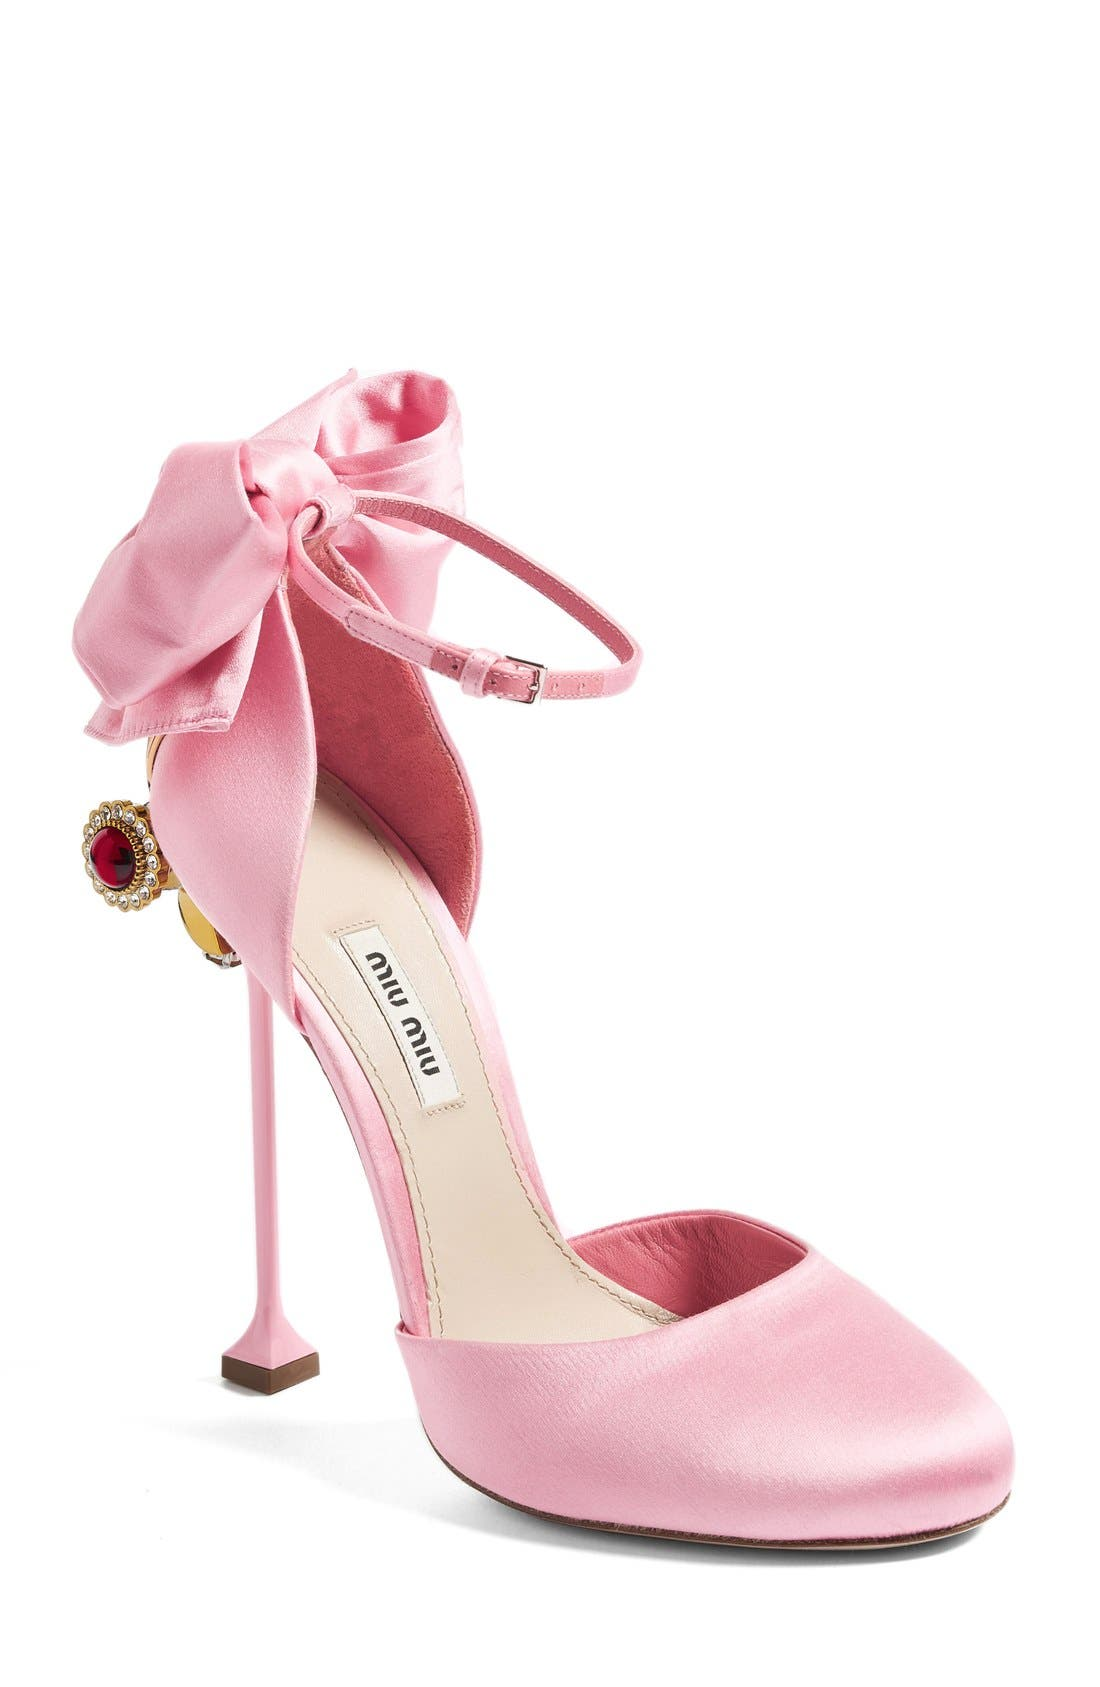 Alternate Image 1 Selected - Miu Miu Crystal Bow Tie Ankle Strap Pump (Women)